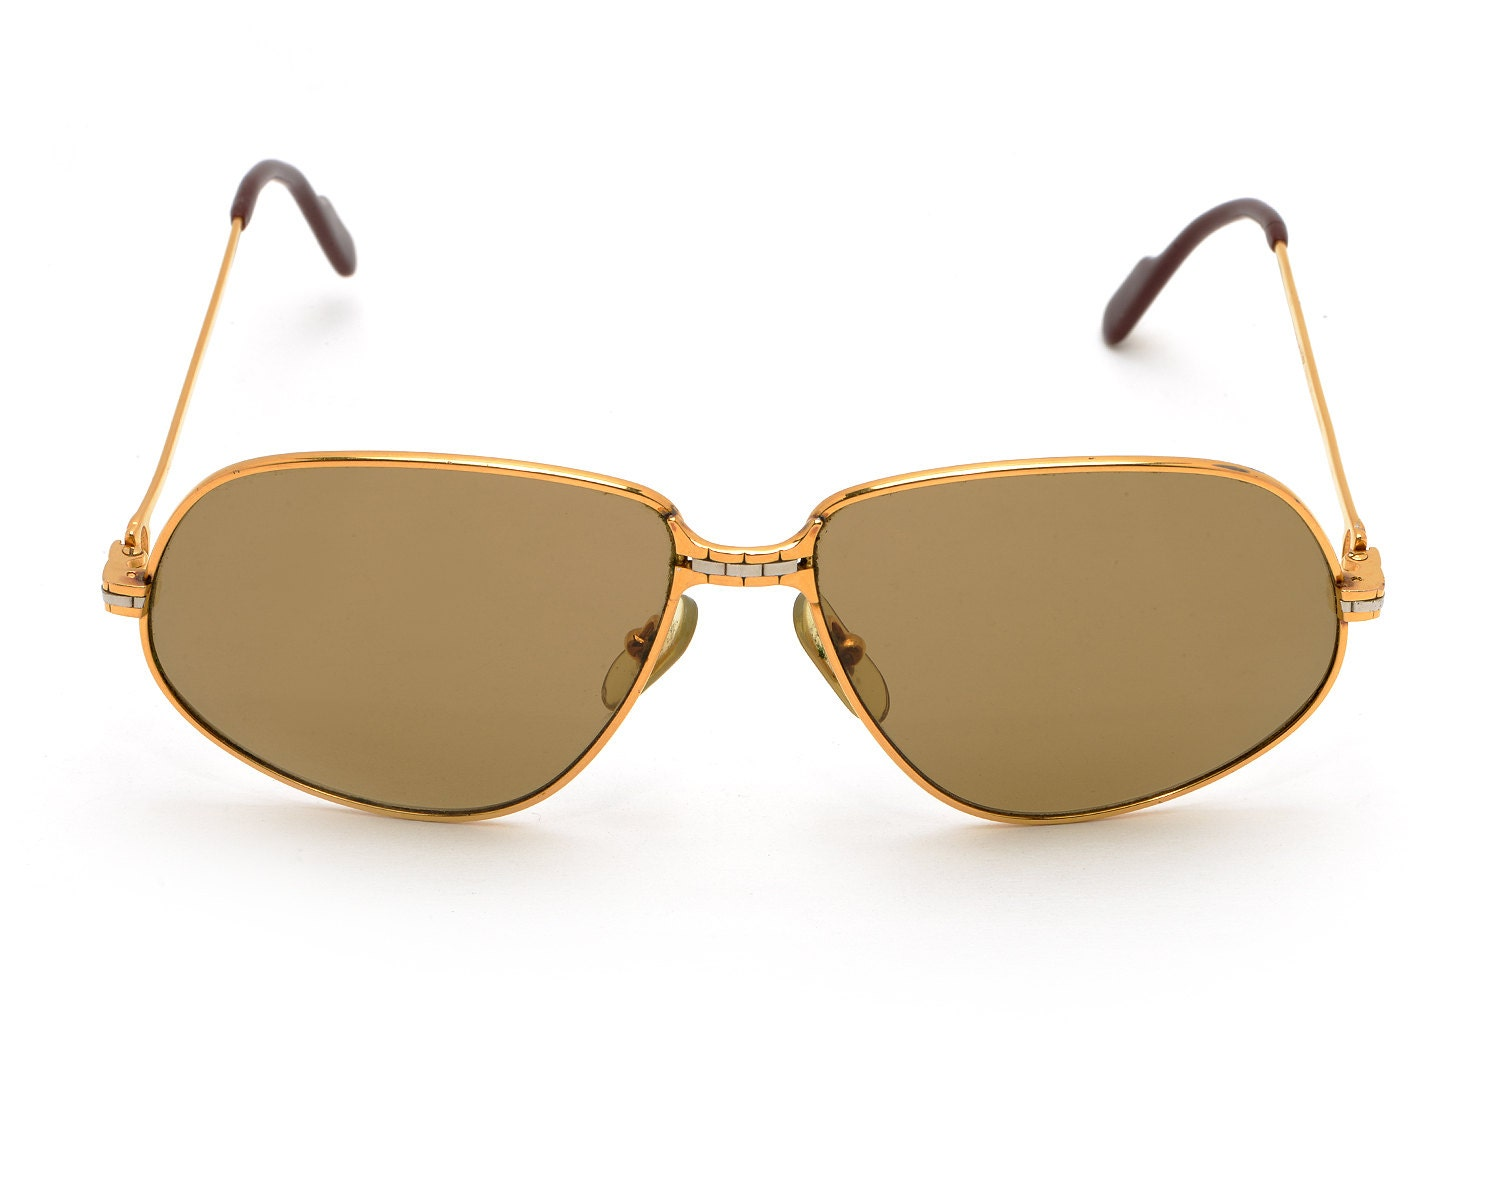 Cartier Gold Frame Sunglasses : Vintage Cartier Paris Sunglasses Gold Metal Frame 59-14-140